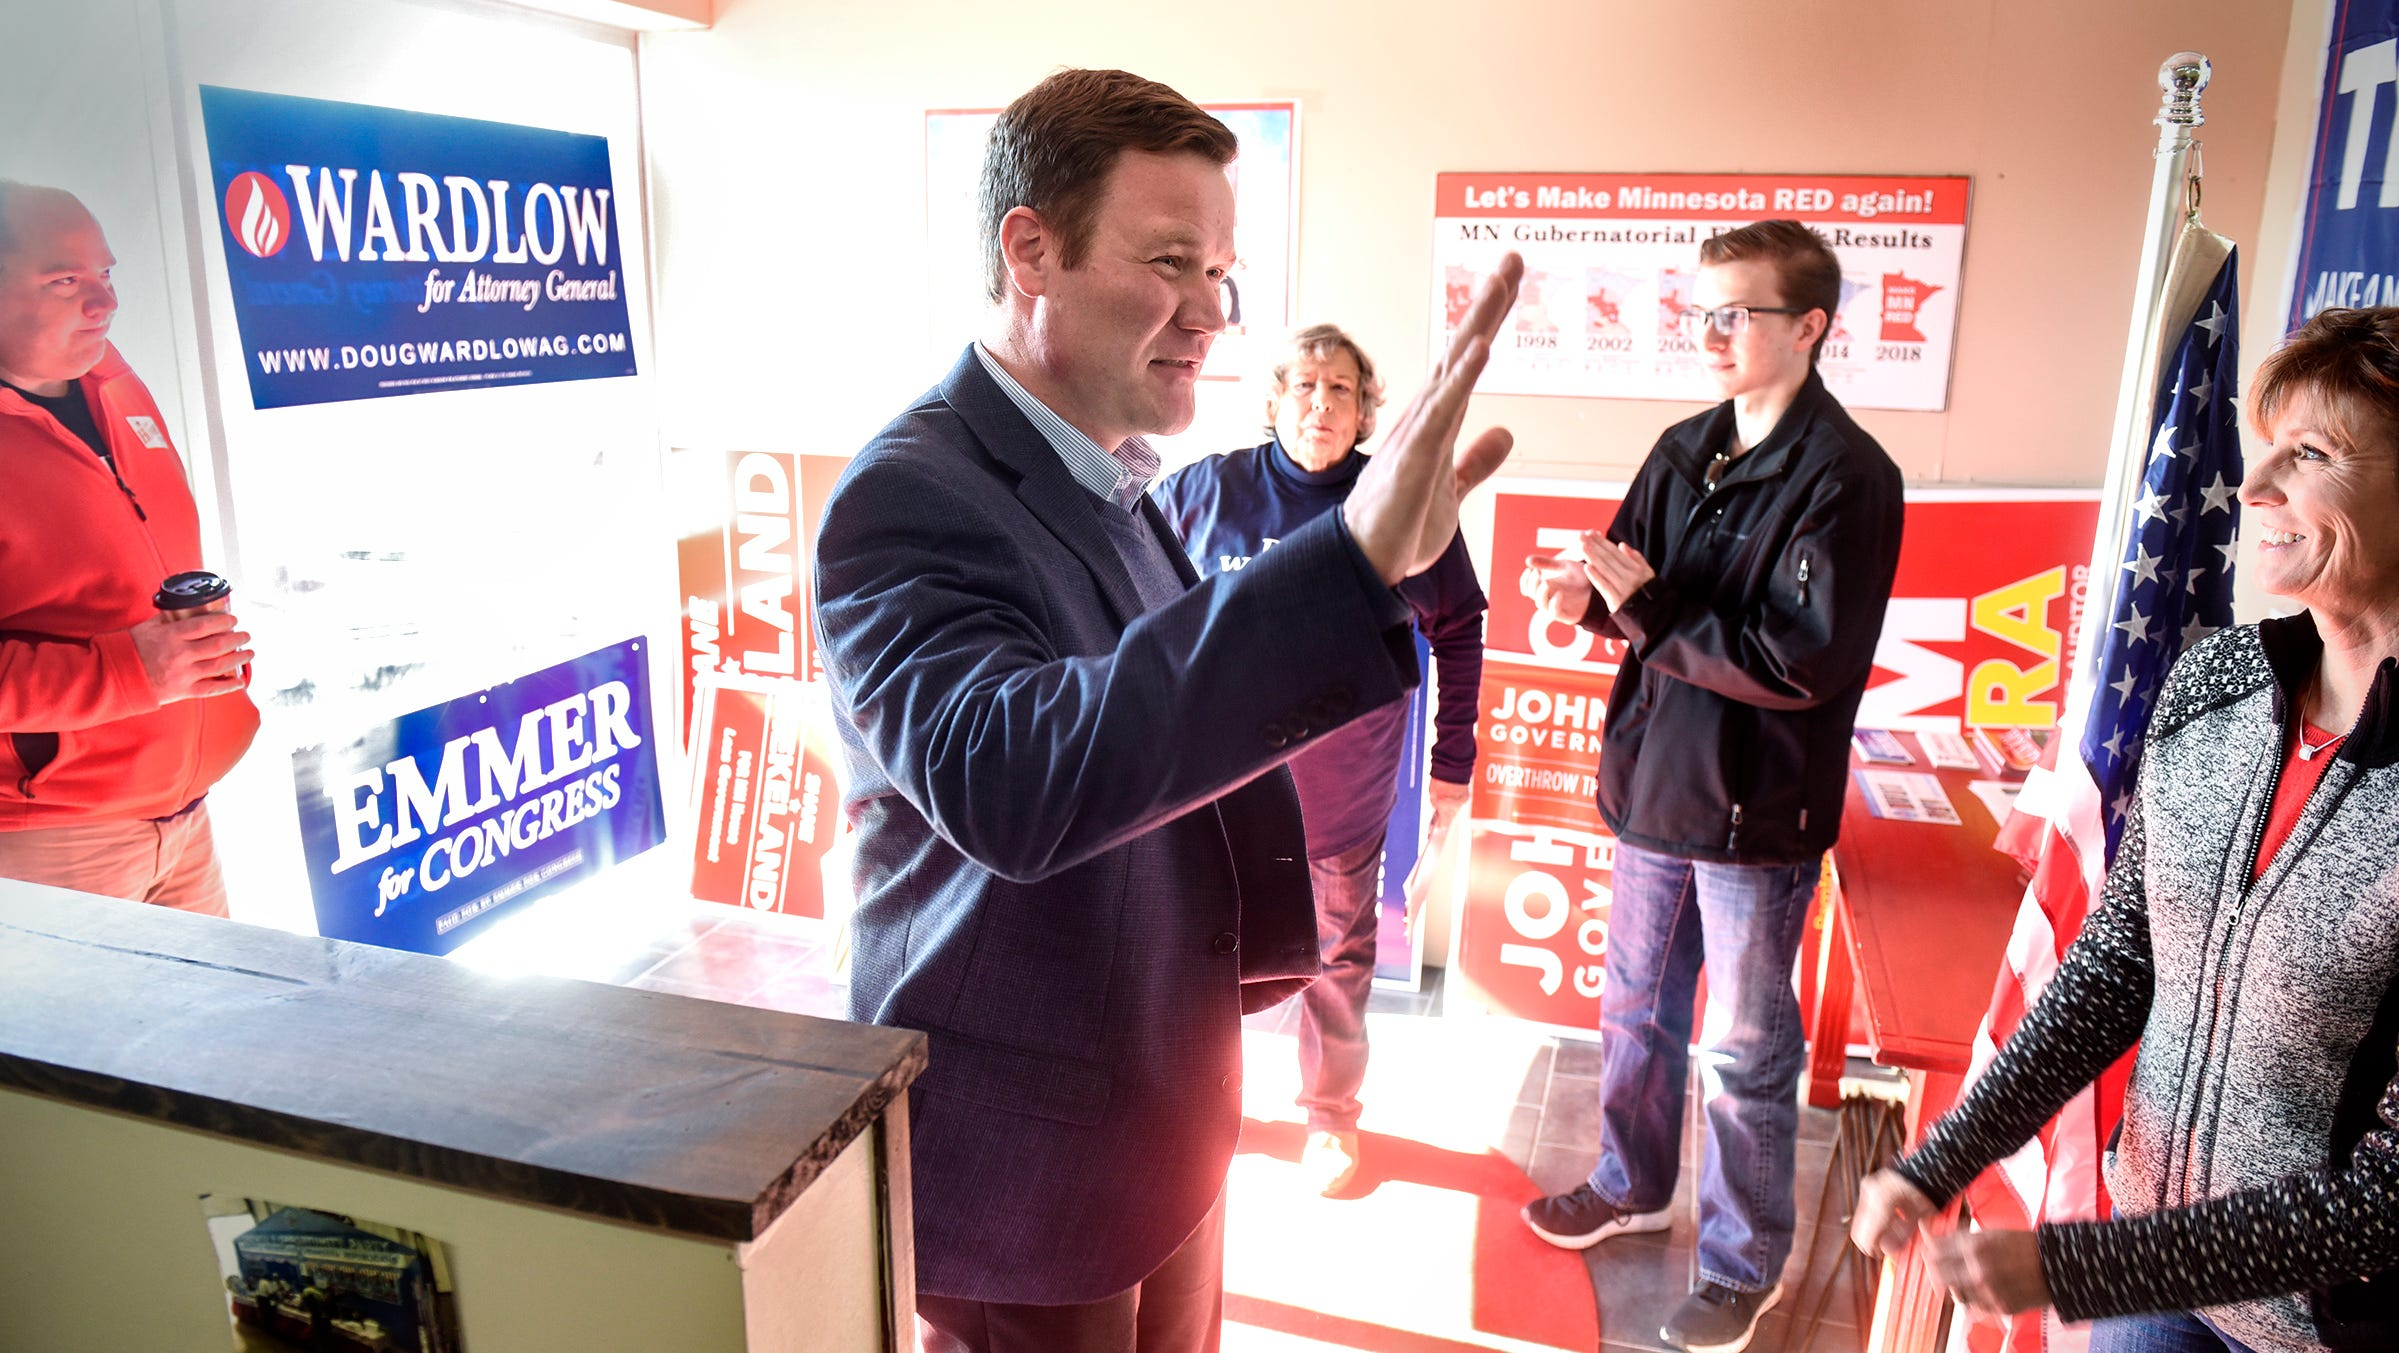 Candidate for attorney general Doug Wardlow greets supporters Saturday, Oct. 20, during a campaign stop at GOP campaign headquarters in St. Cloud.